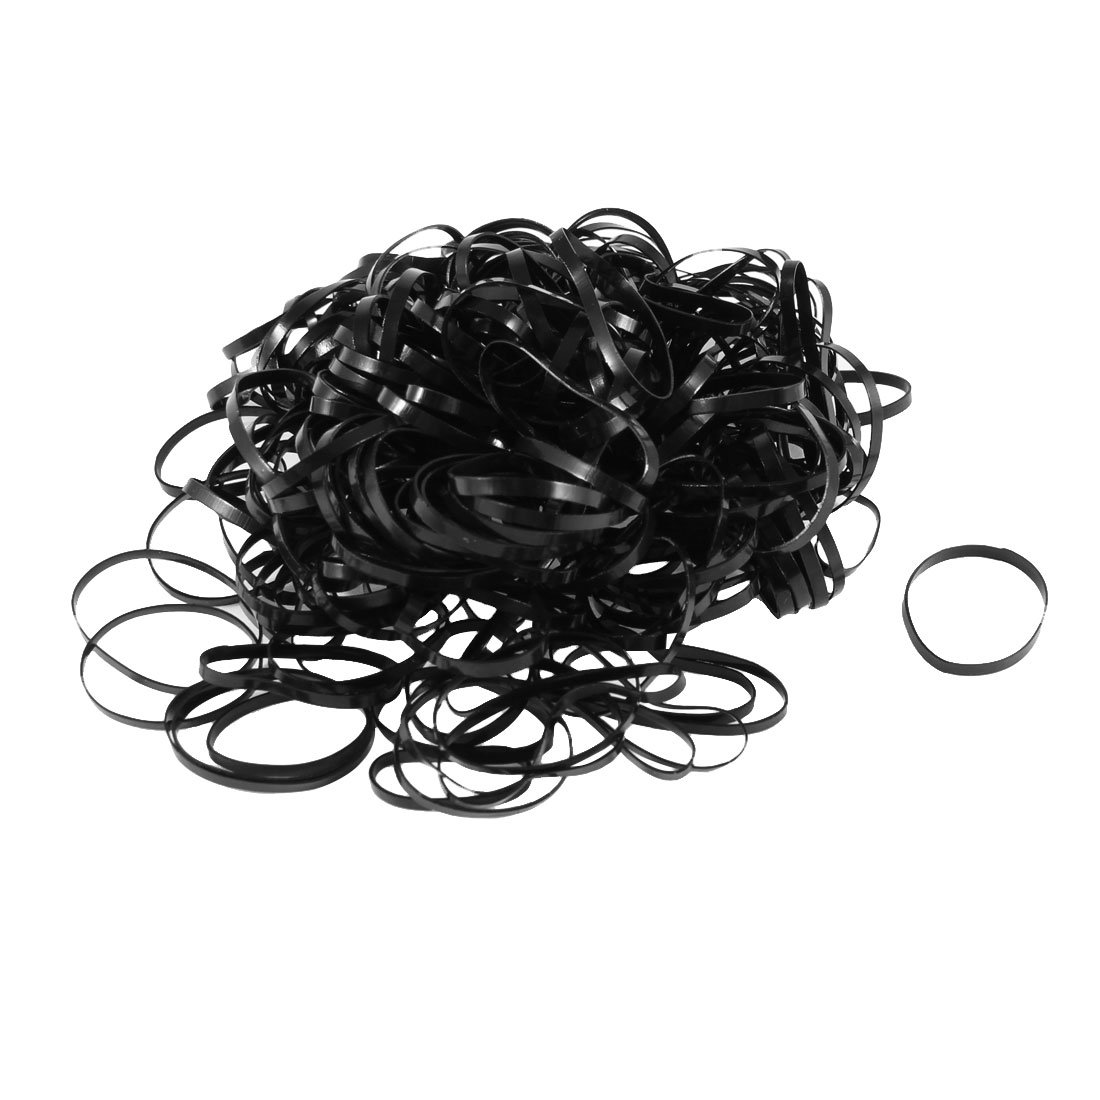 uxcell 255 Pcs Black Elastic Ponytail Holders Hair Rubber Bands for Girl Lady a13110400ux0156